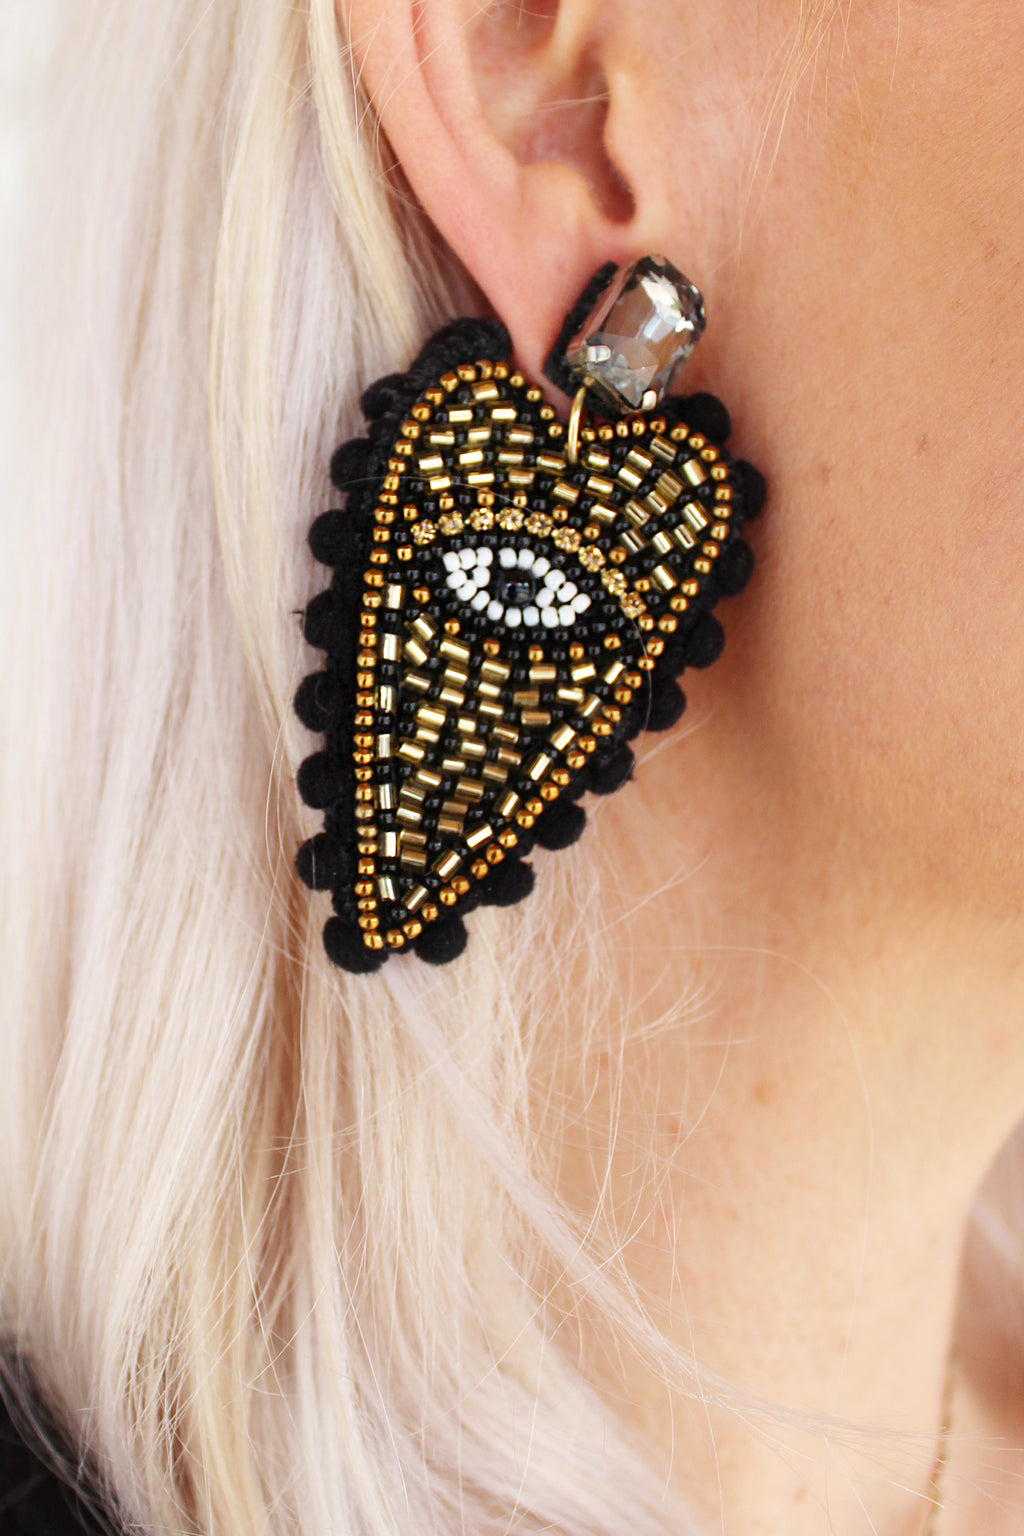 Black/Gold Beaded Heart Statement Earrings, Evil Eye Pom Pom Earrings - Shop Accessories For Women Now At Kendry Collection Online Boutique